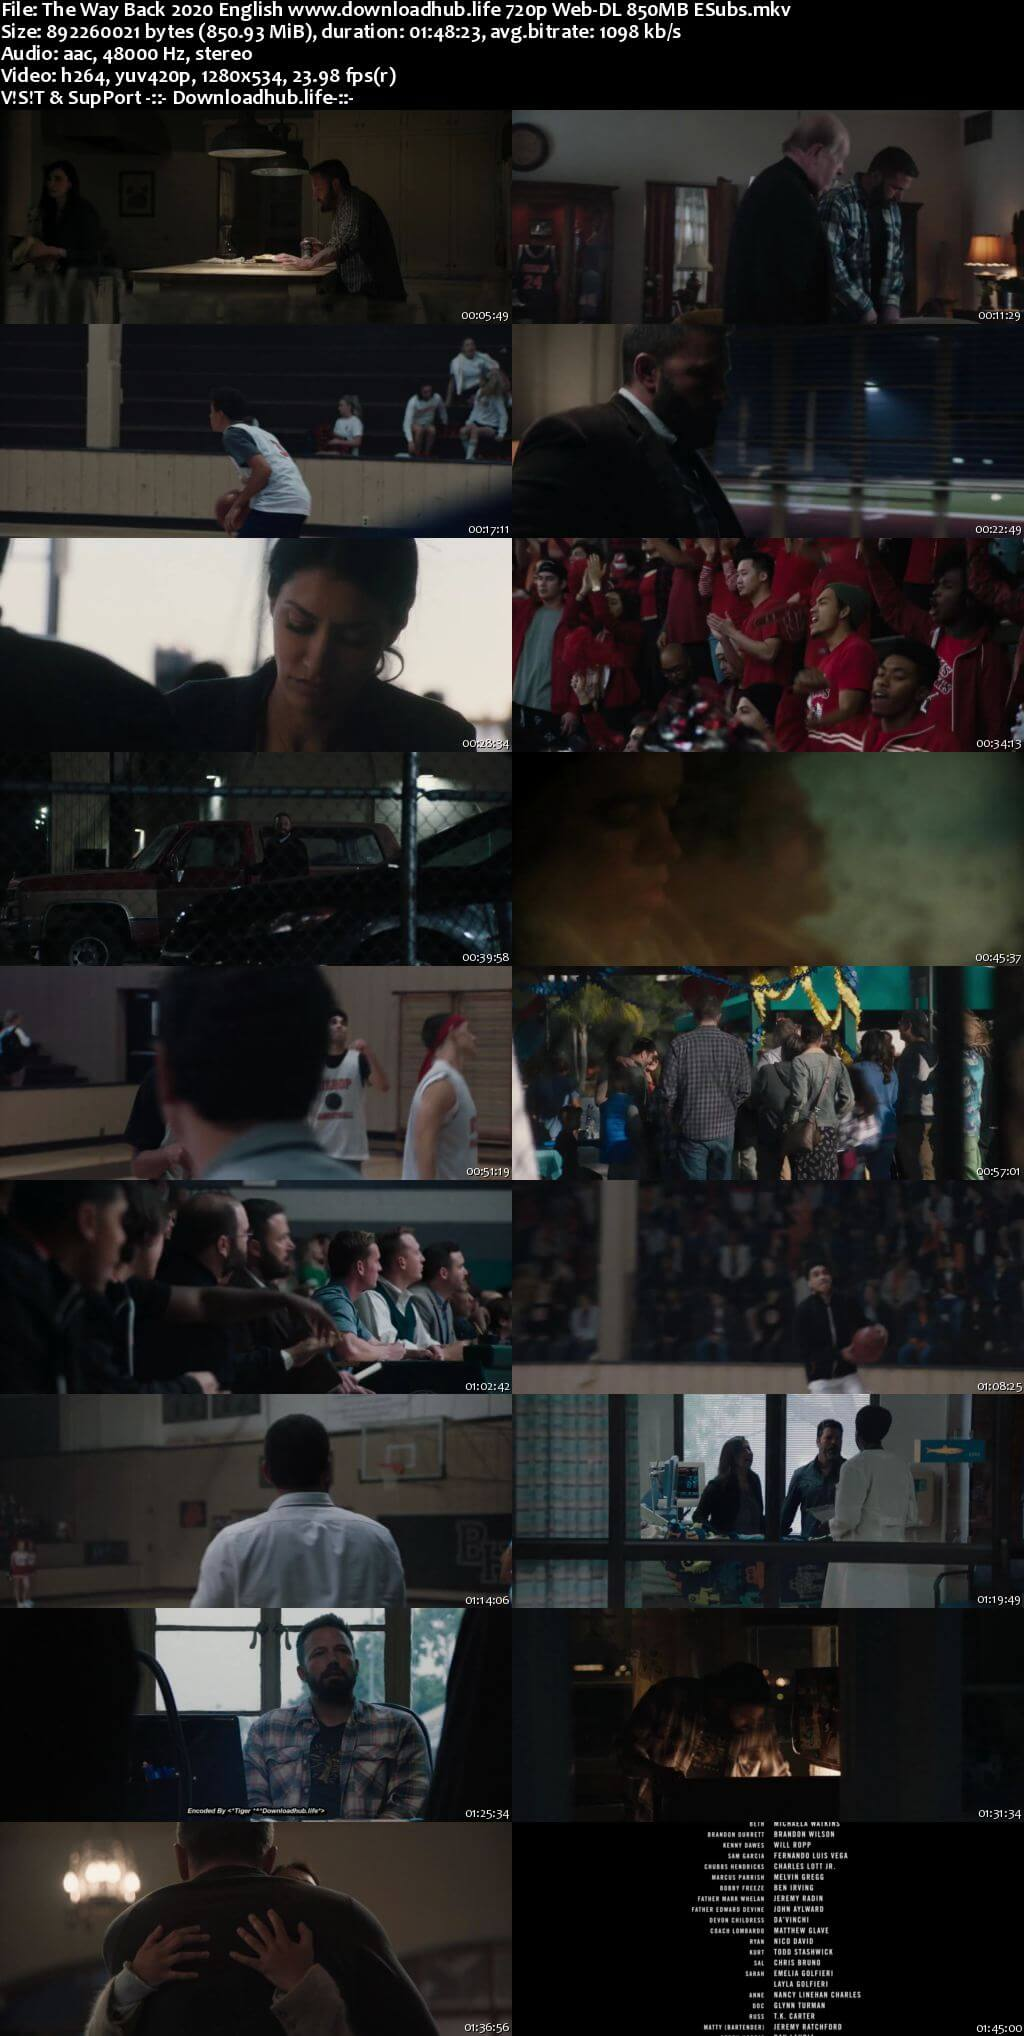 The Way Back 2020 English 720p Web-DL 850MB ESubs